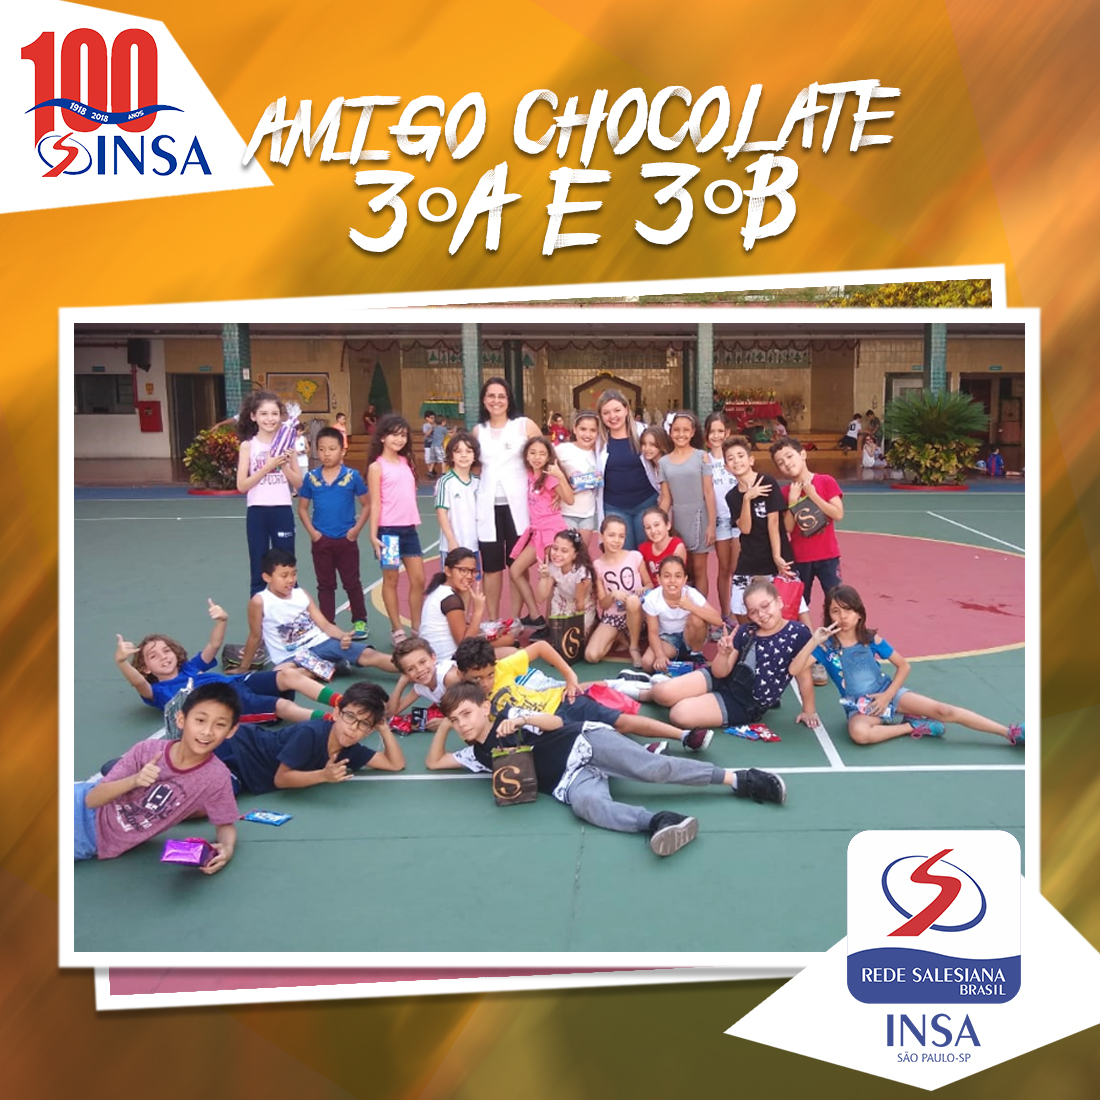 Amigo Chocolate - 3°A e 3°B